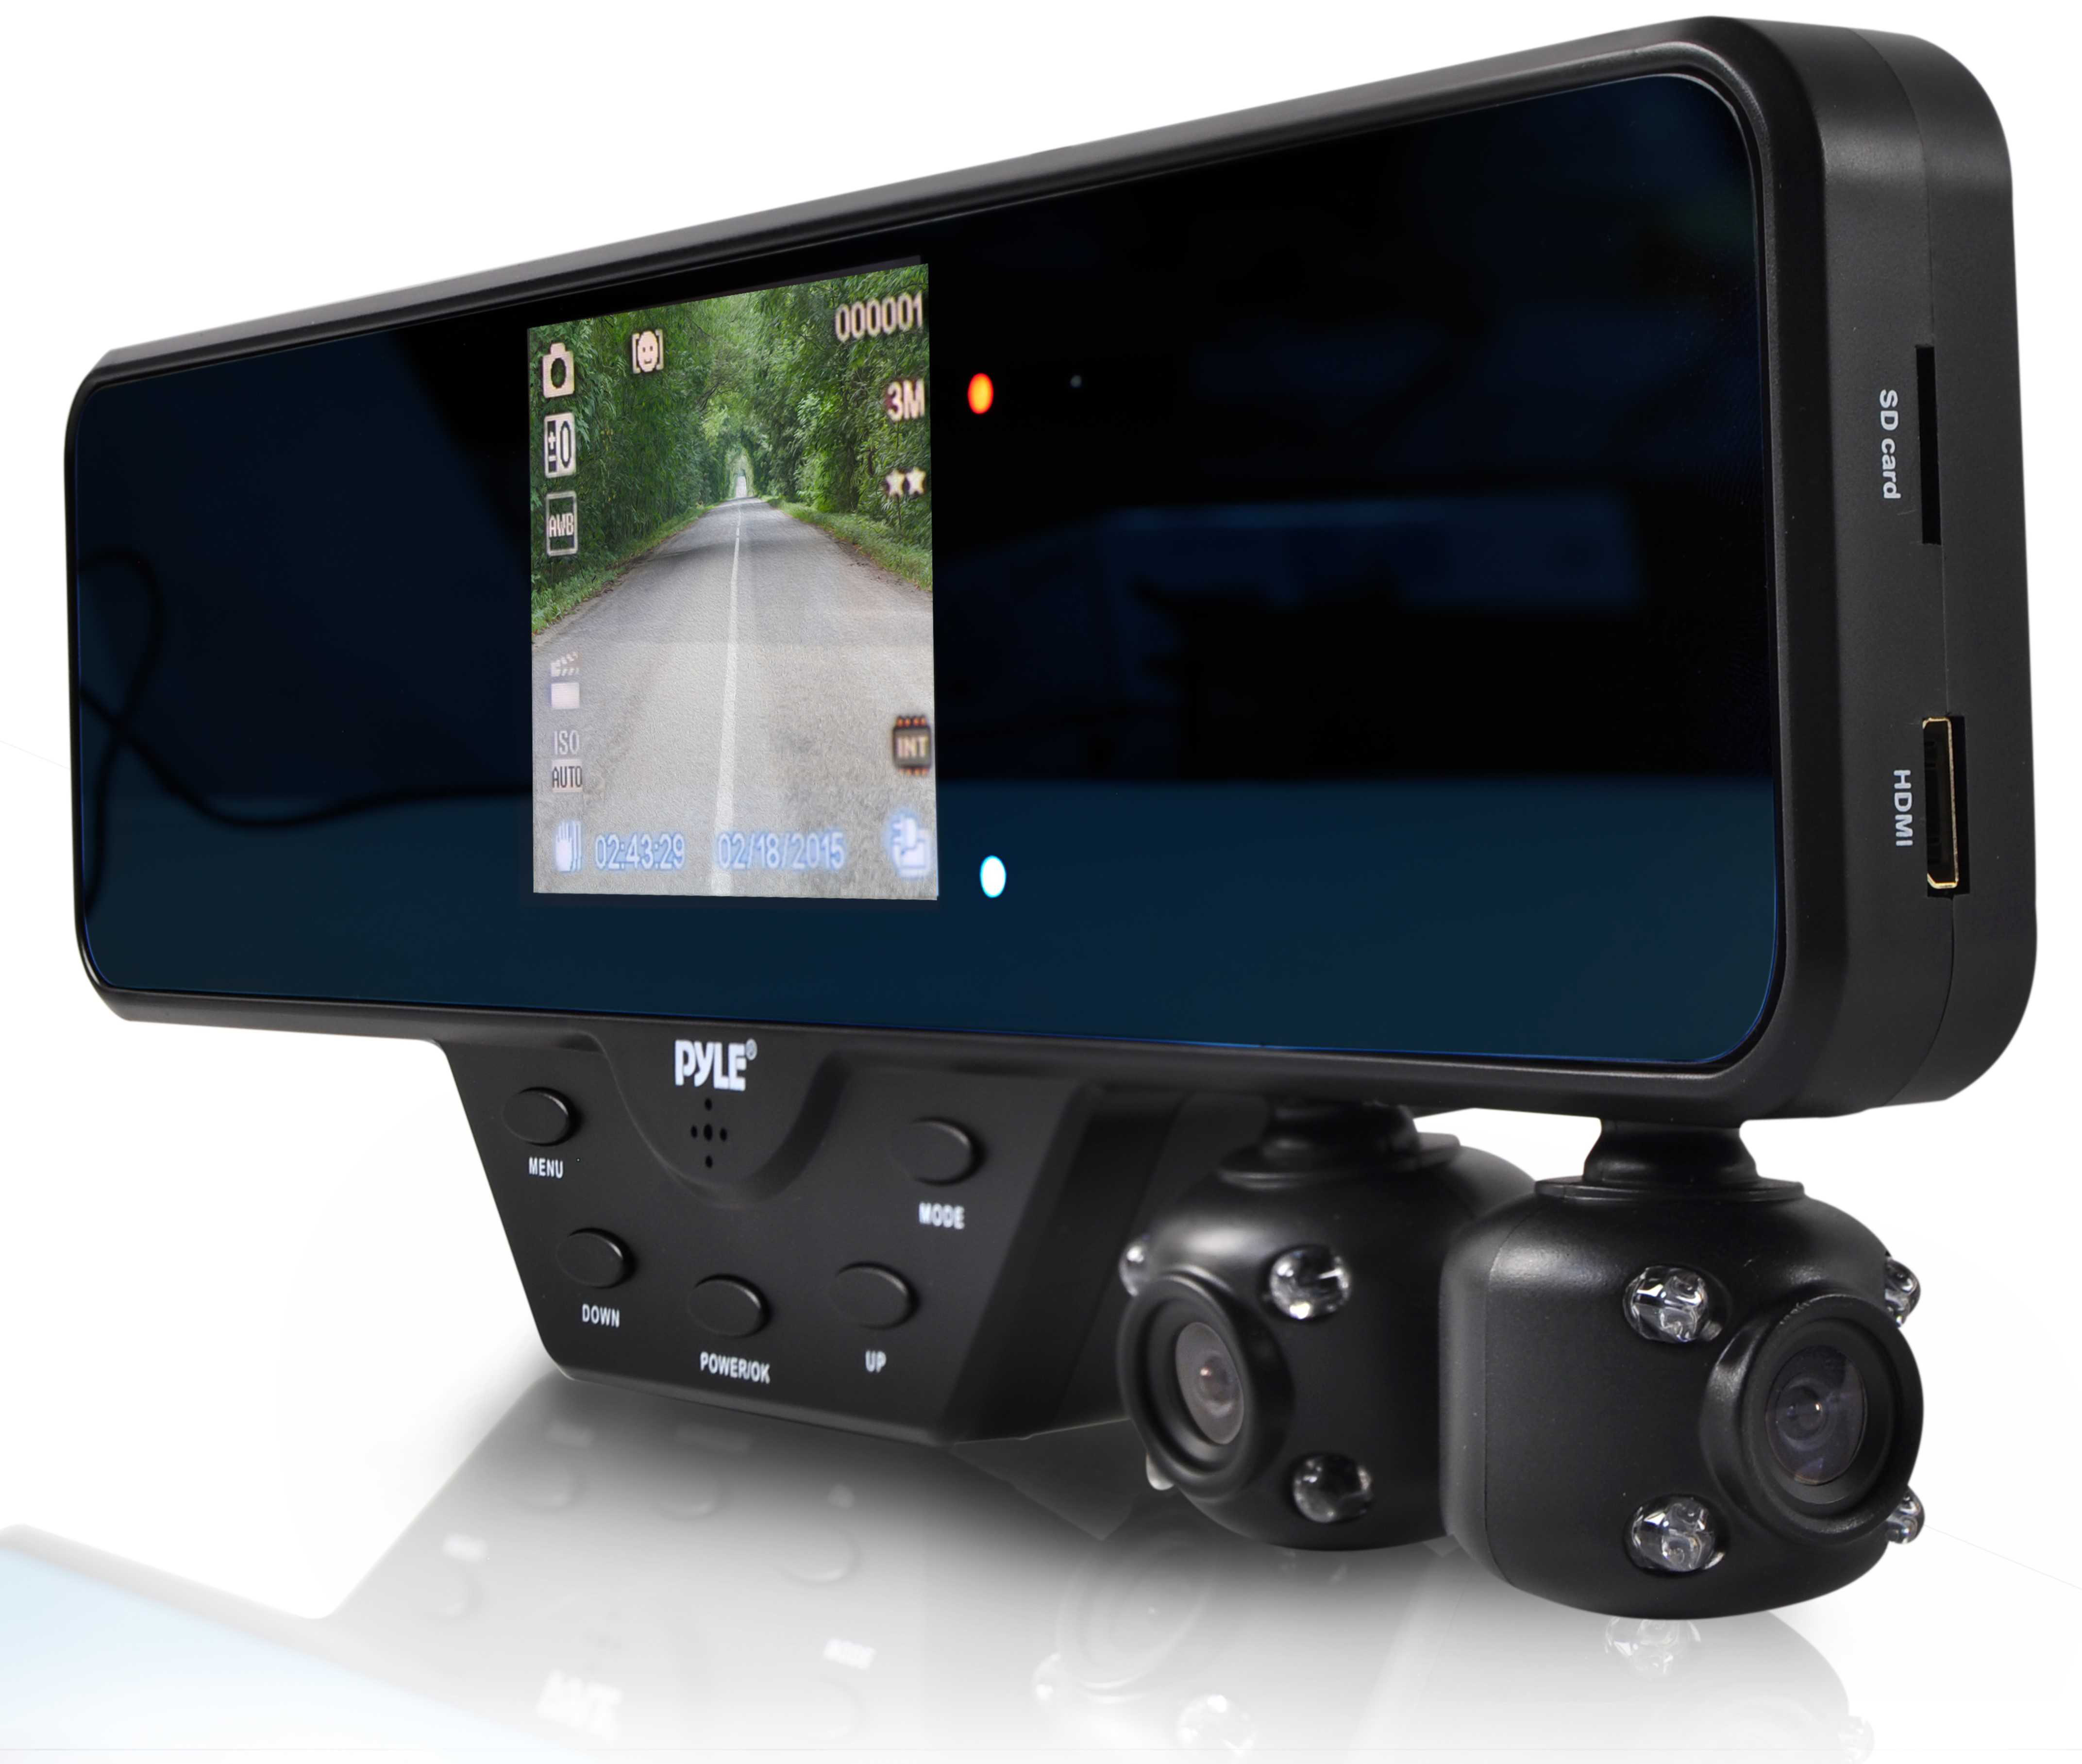 Pyle Dual Camera and Monitor DVR System